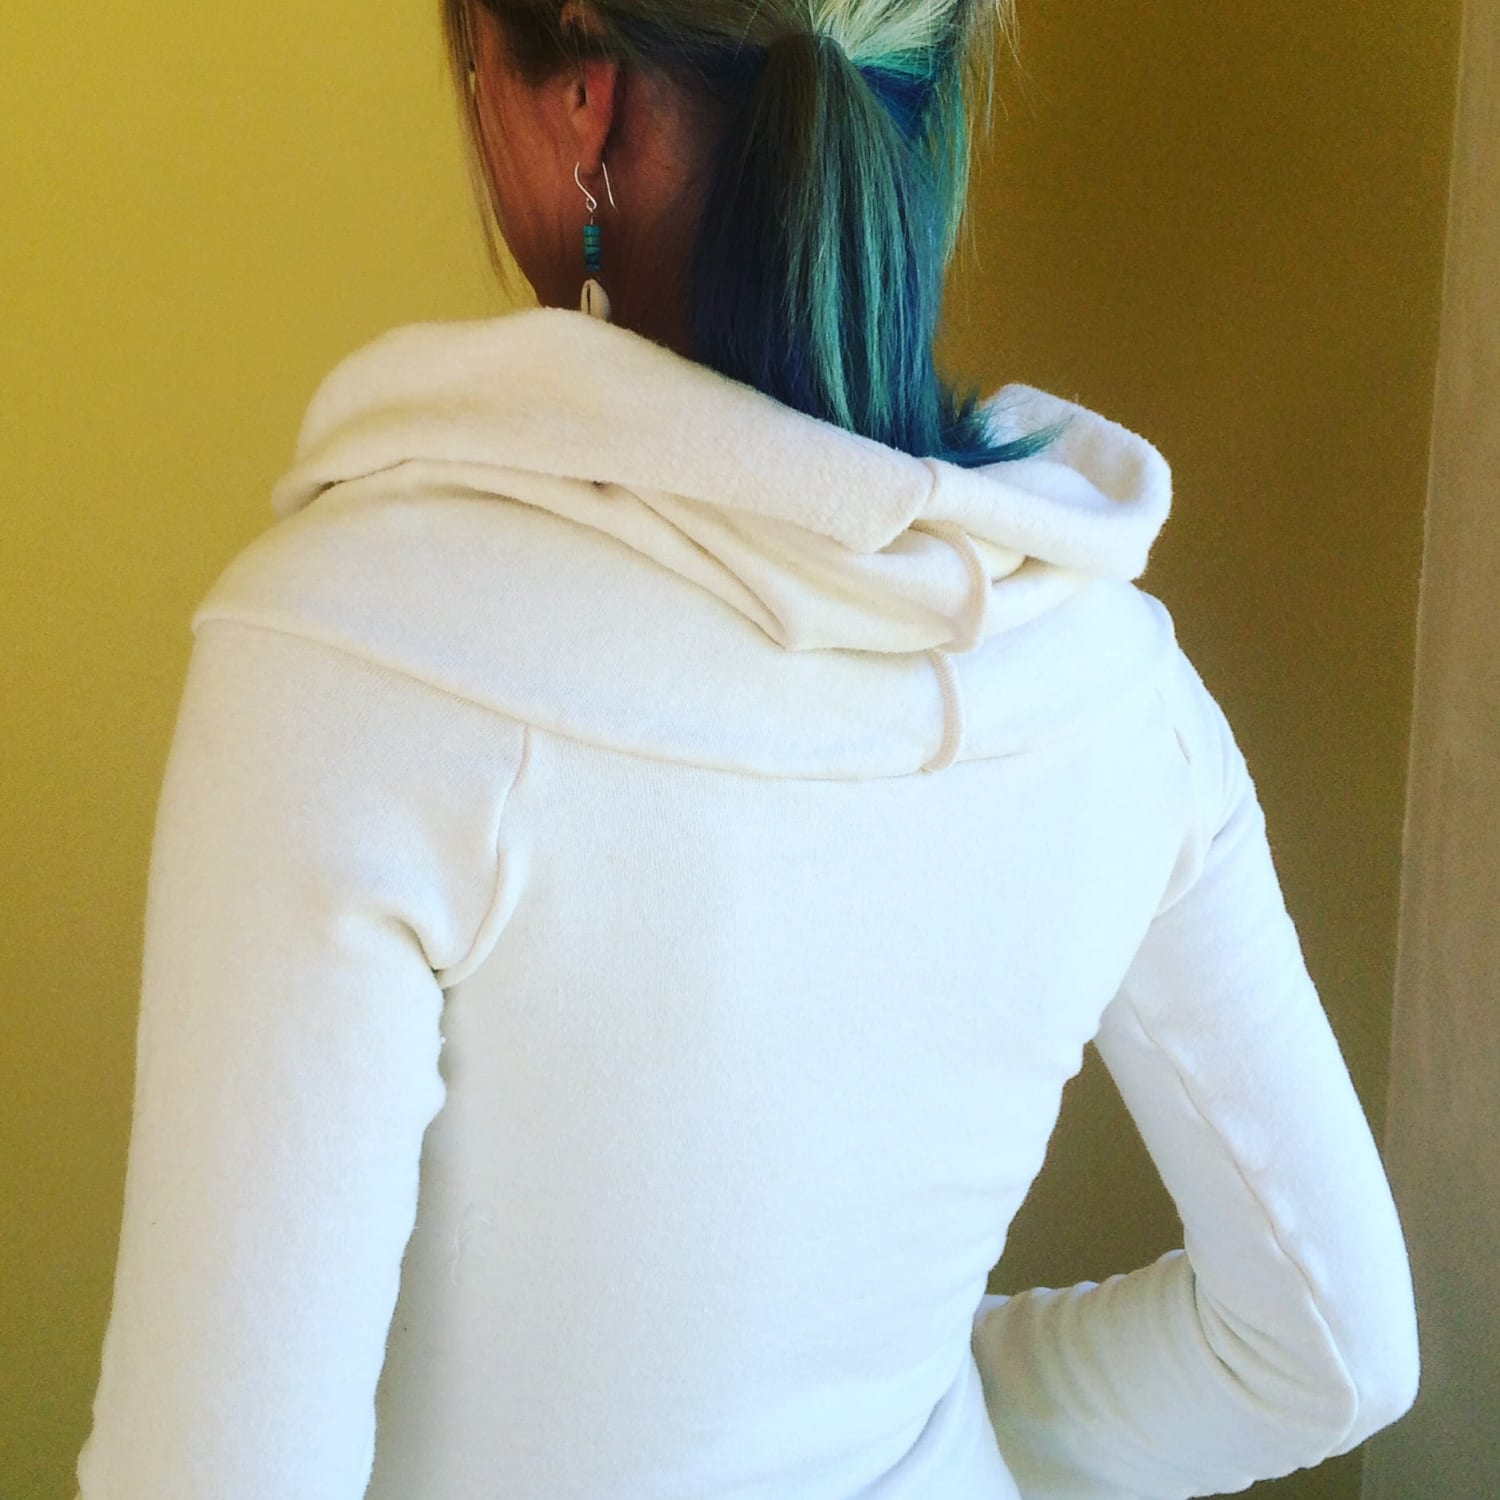 City Sweatshirt got redone this winter! Slouchy with extra tunic neck for additional warmth and comfort.